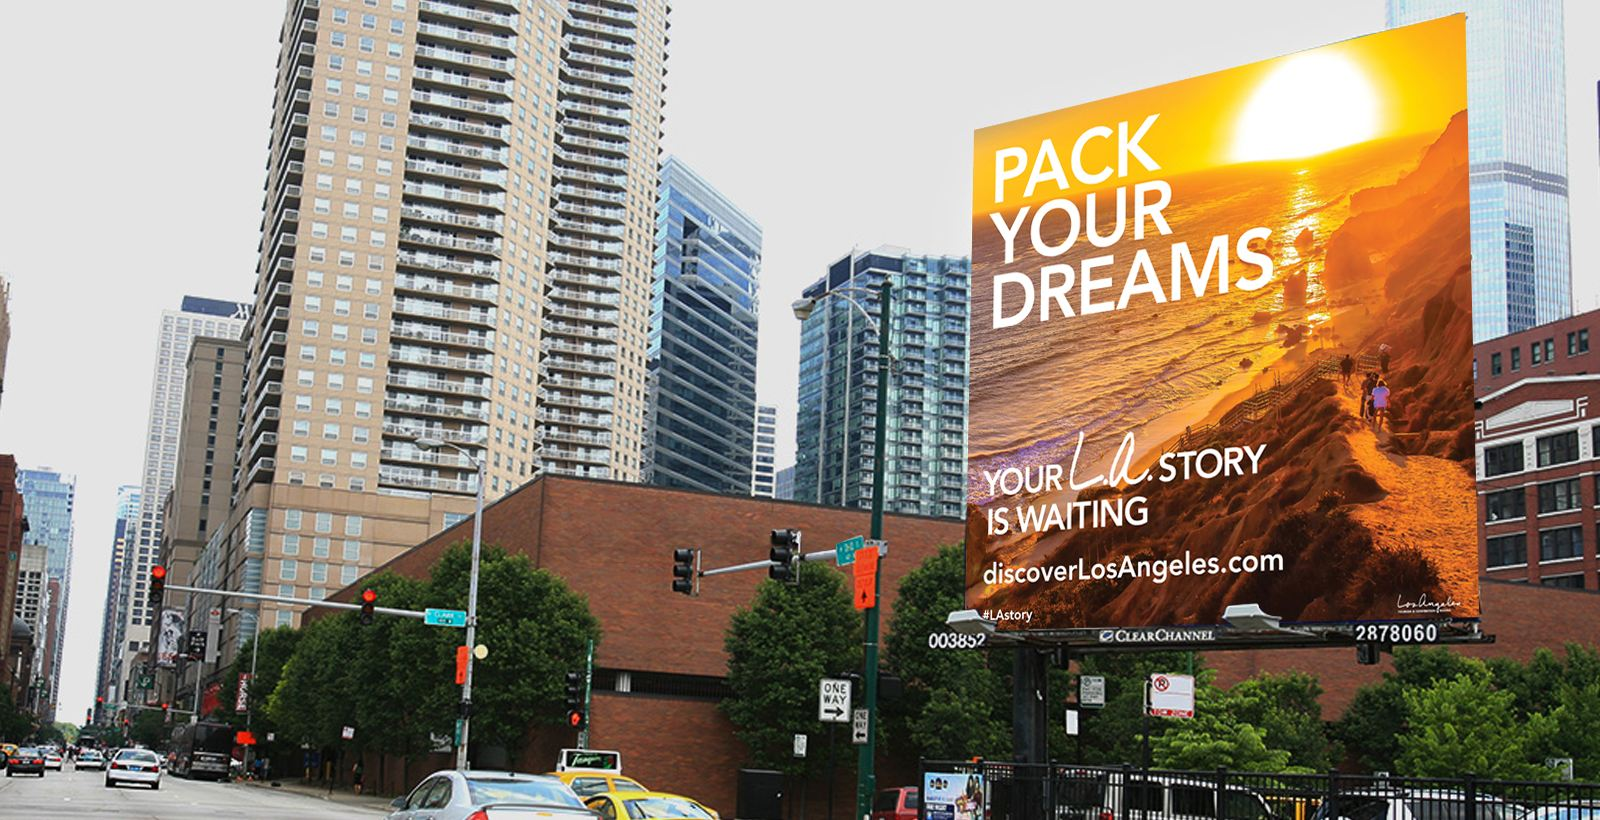 LA Tourism Billboard ad - pack your dreams with sunset image